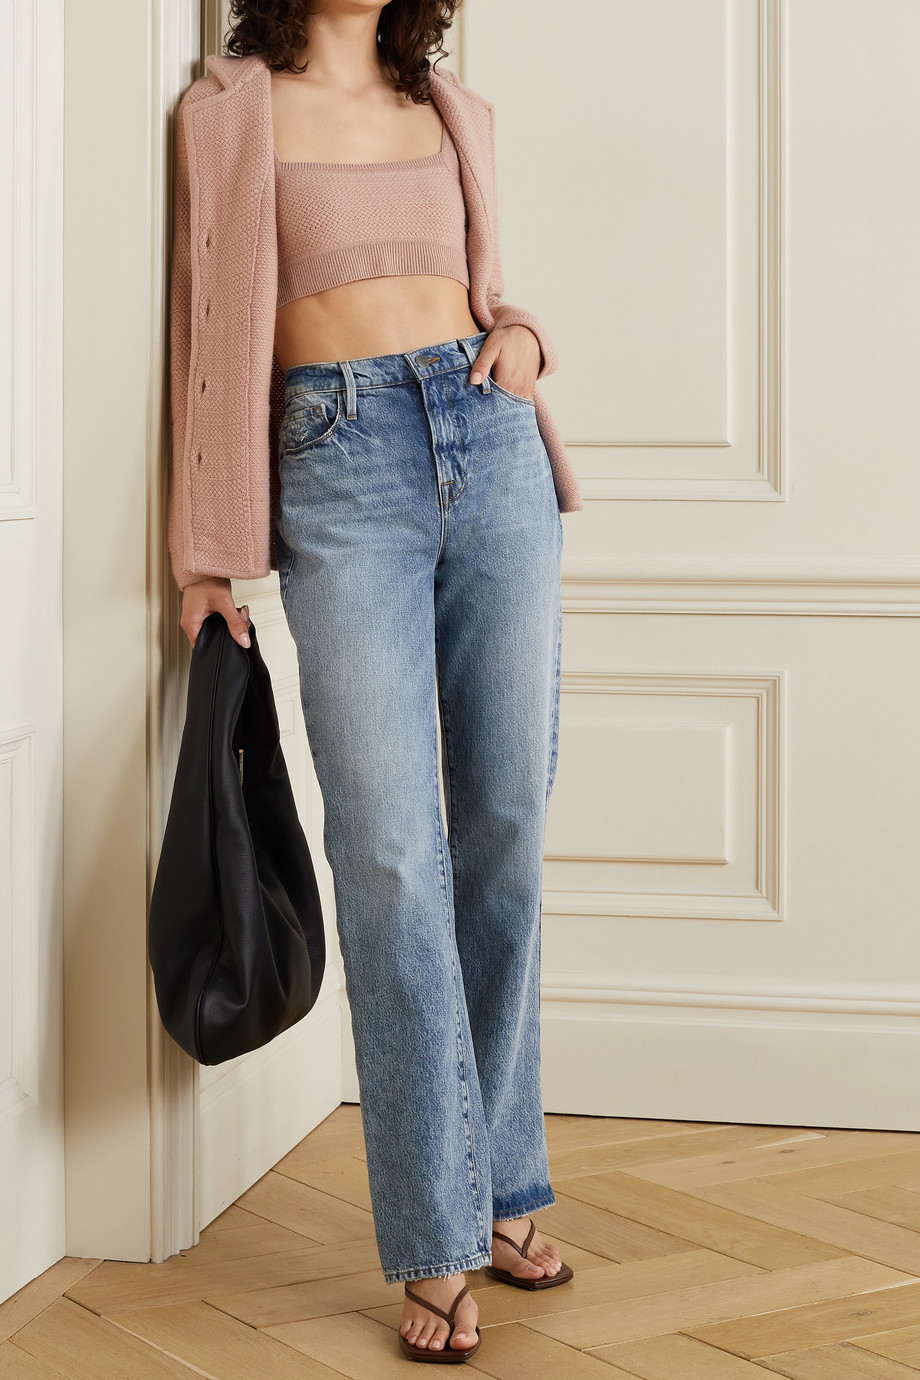 Arch4 Imperial cropped cashmere camisole